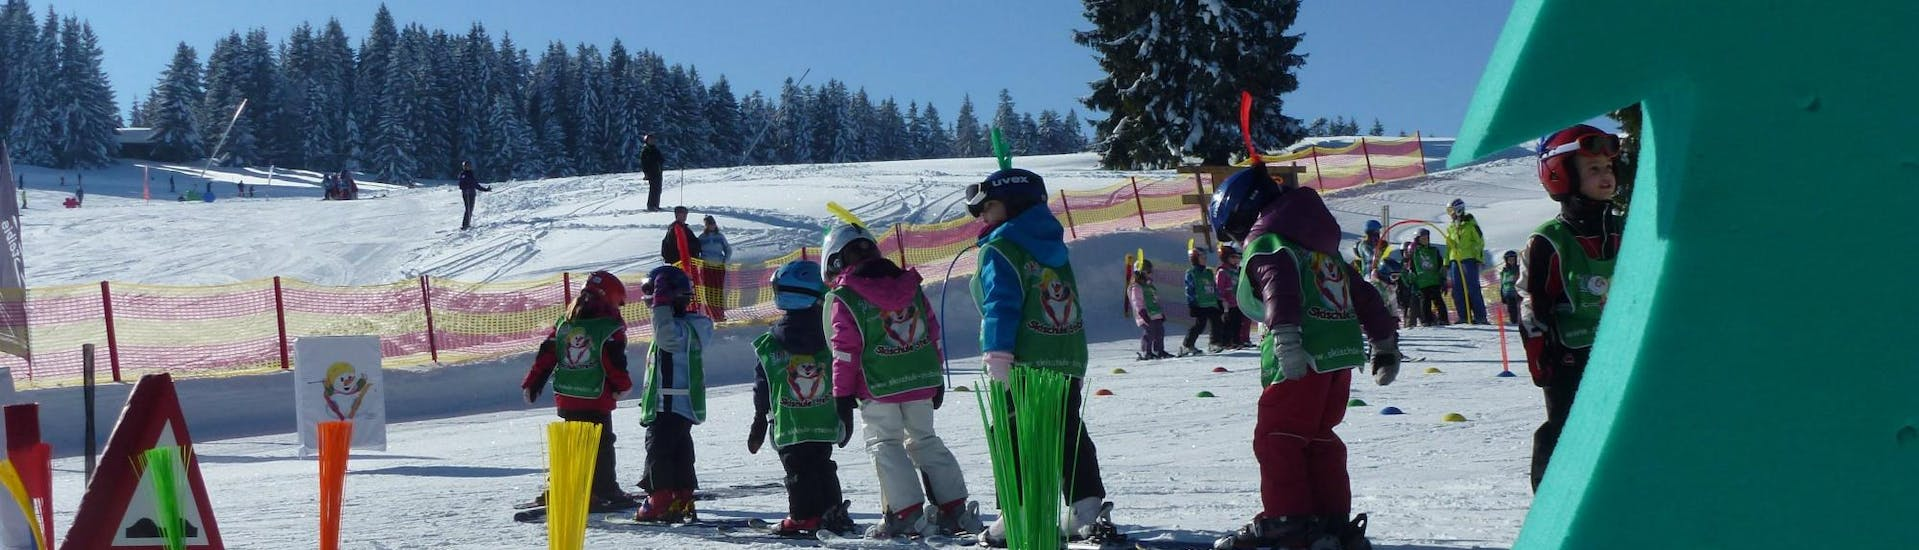 In the children's area of Skischule Steibis the participants of the Kids Ski Lessons (4-15 years) - Morning - First Timer gain their first experience on skis.